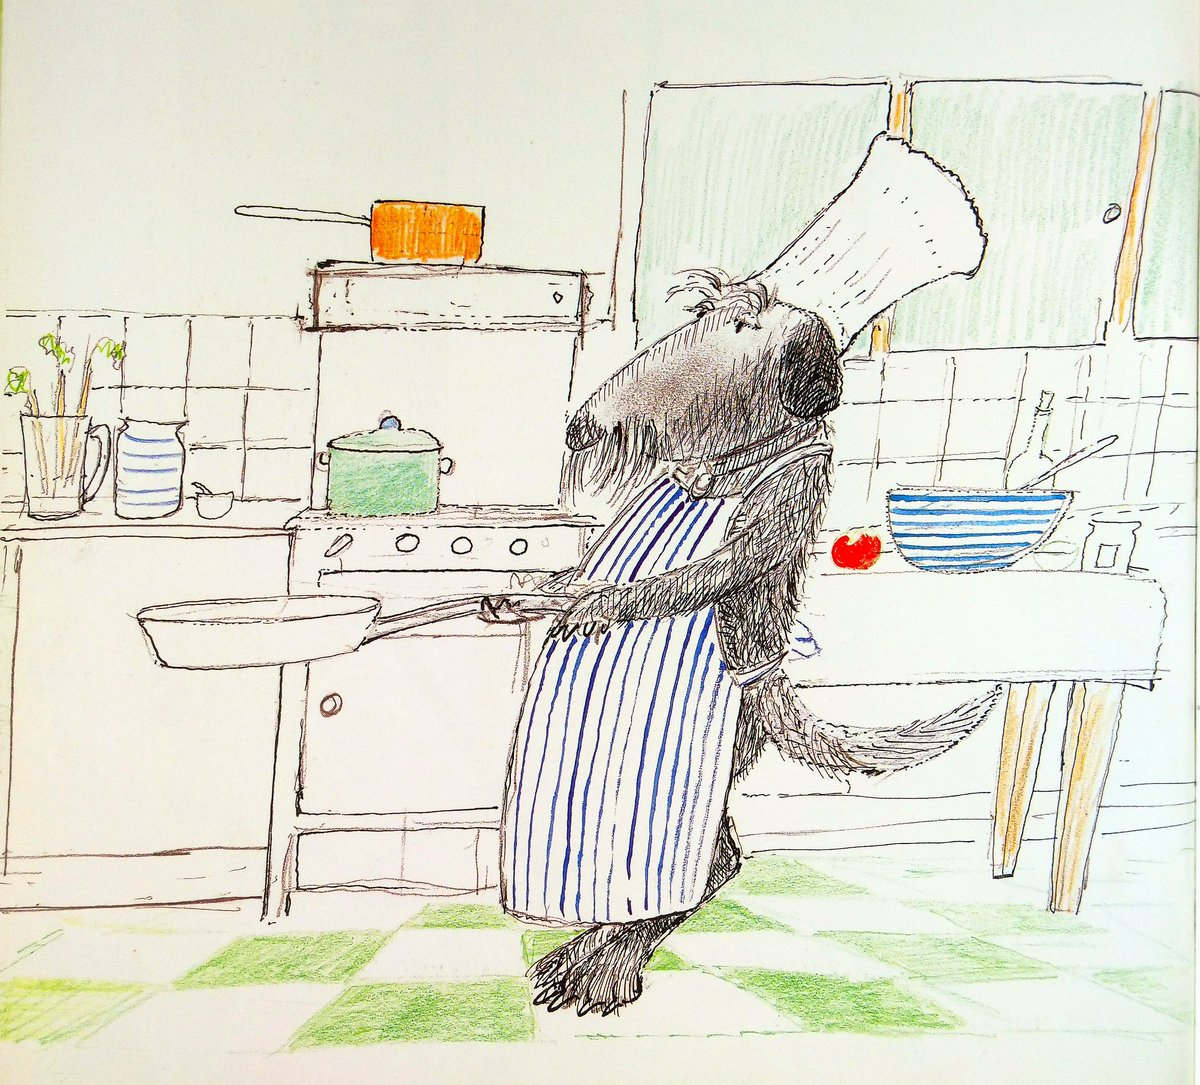 """#BookIllustrationOfTheDay is by John Burningham for """"Courtney"""" (1994). I'll be joining Catherine Rayner to celebrate the great man's life & work TODAY at the Edinburgh Book Festival, 5.30. I love his deft characterisation - the gentle Courtney, in quirky yet sensitive line. <br>http://pic.twitter.com/OqYfs7UqTf"""